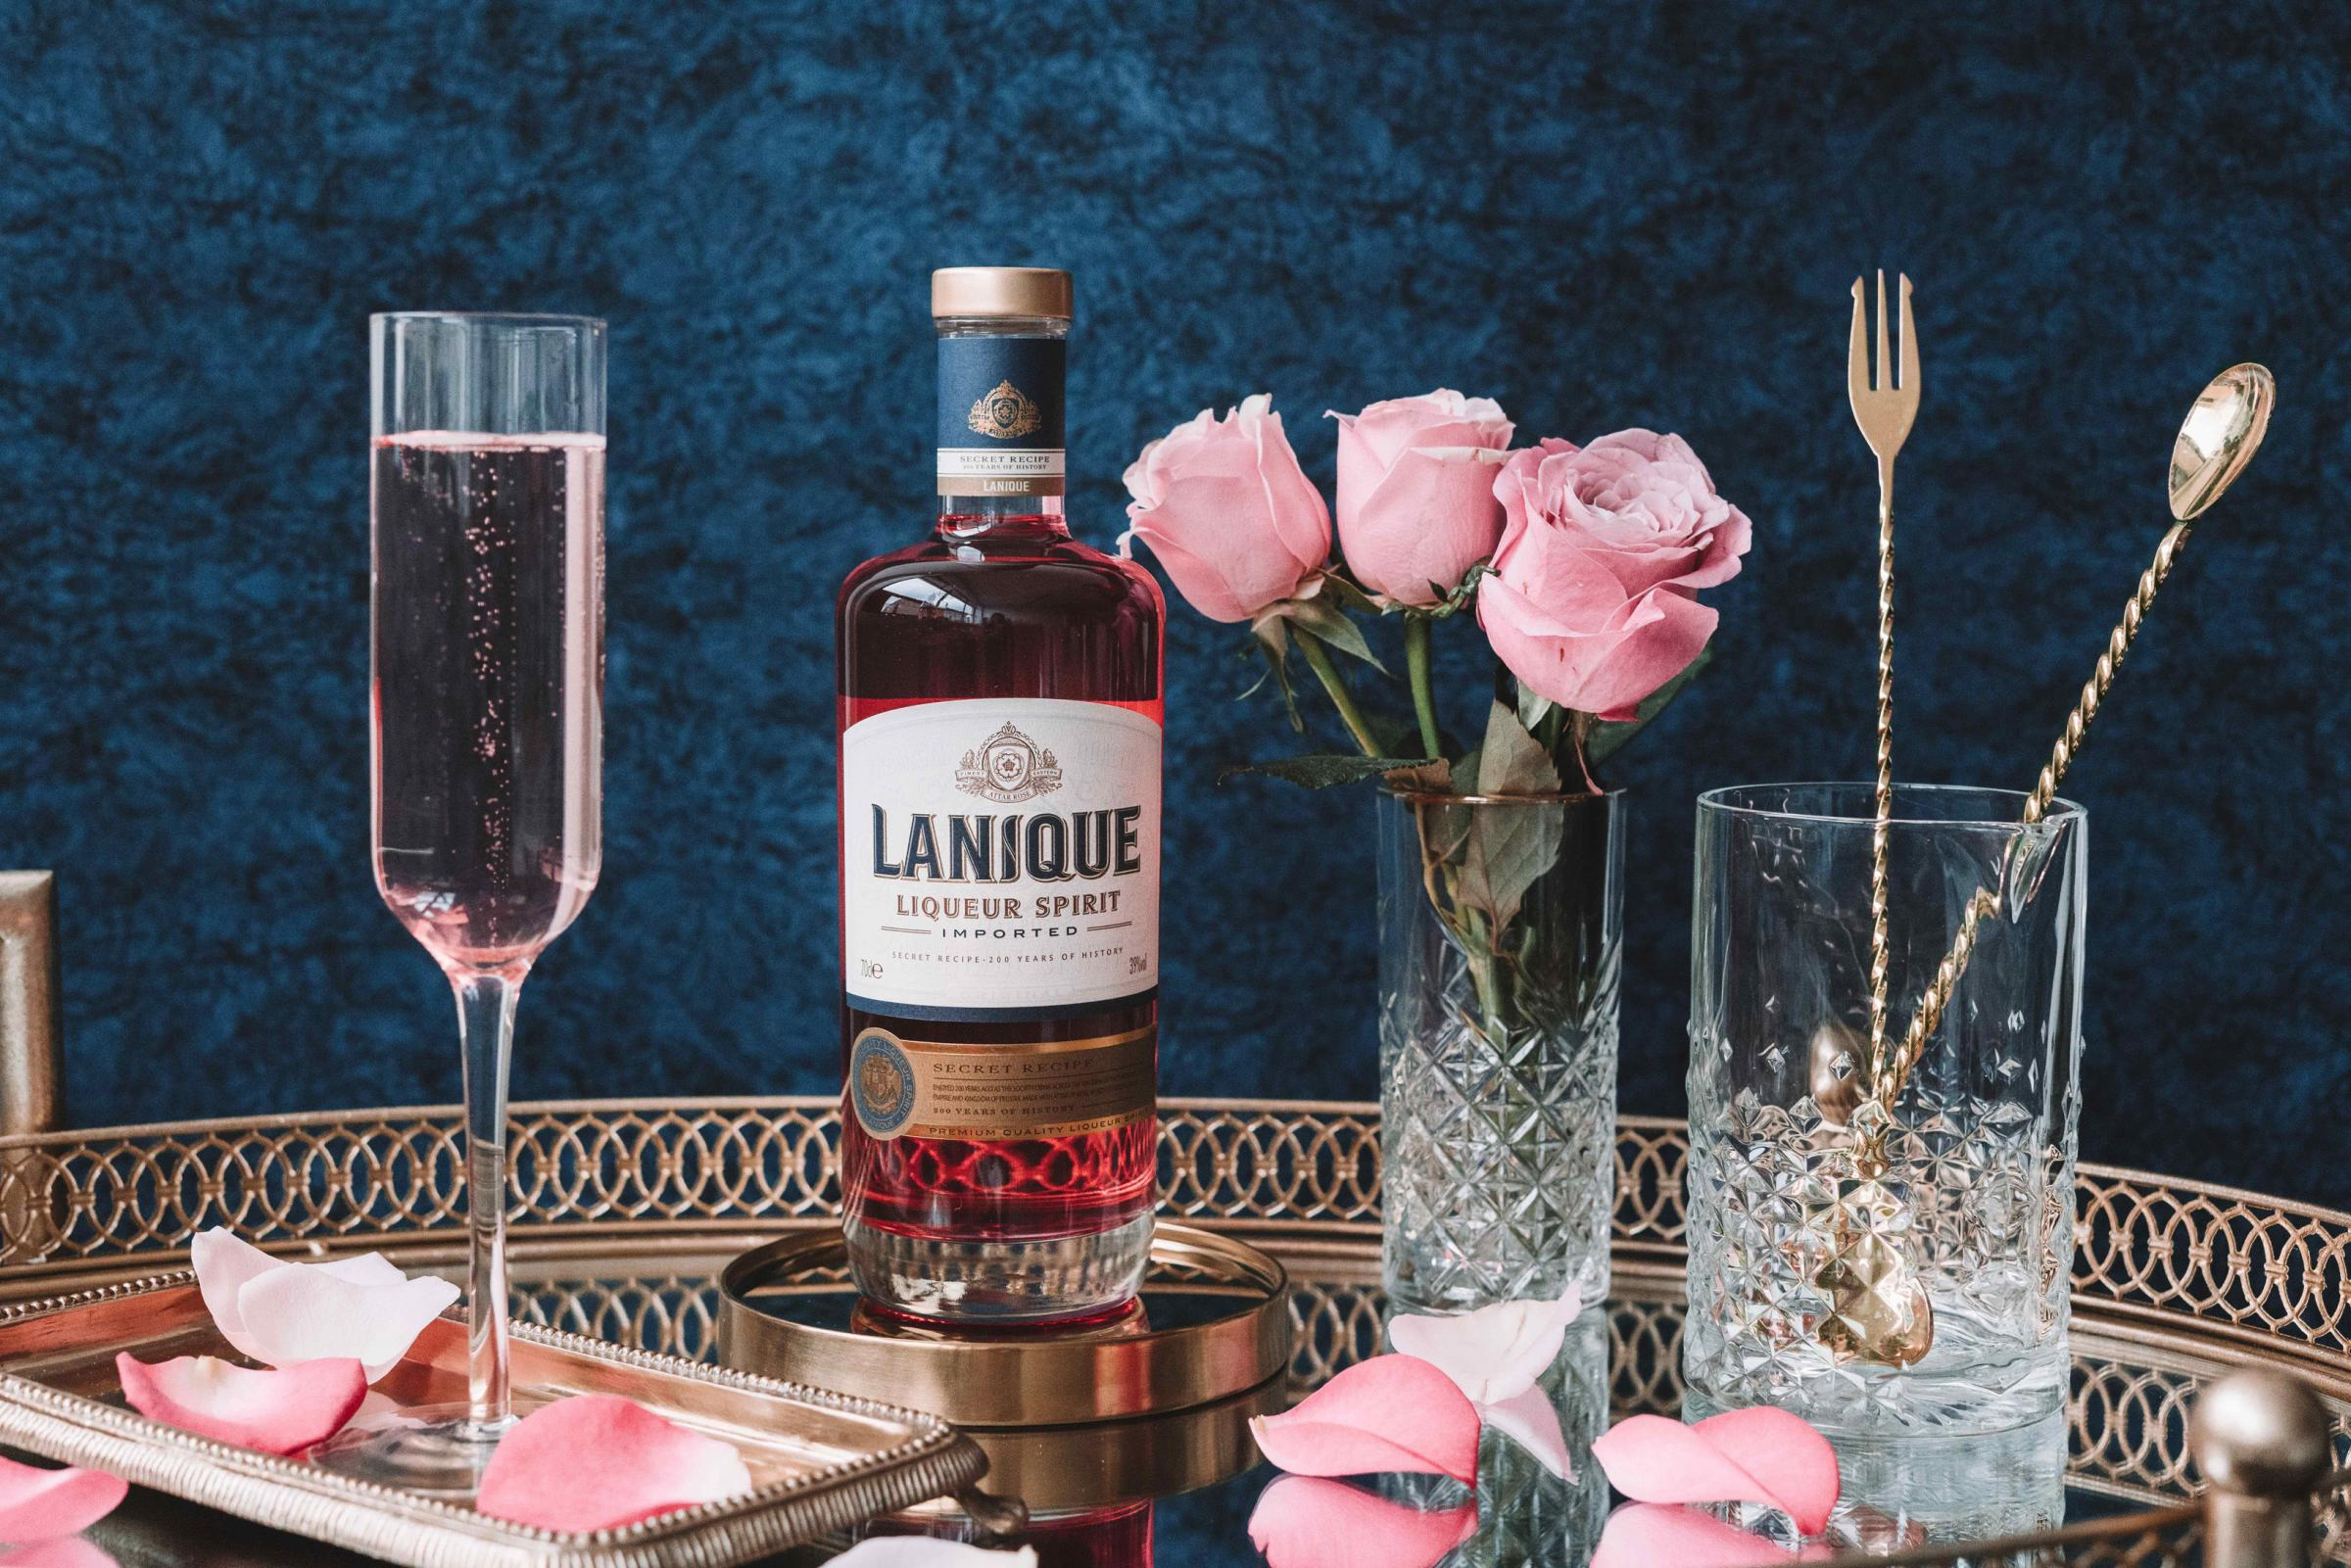 Undated Handout Photo of Lanique Rose Liqueur Spirit. See PA Feature DRINK Valentine Gifting. Picture credit should read: PA Photo/Lanique. WARNING: This picture must only be used to accompany PA Feature DRINK Valentine Gifting.